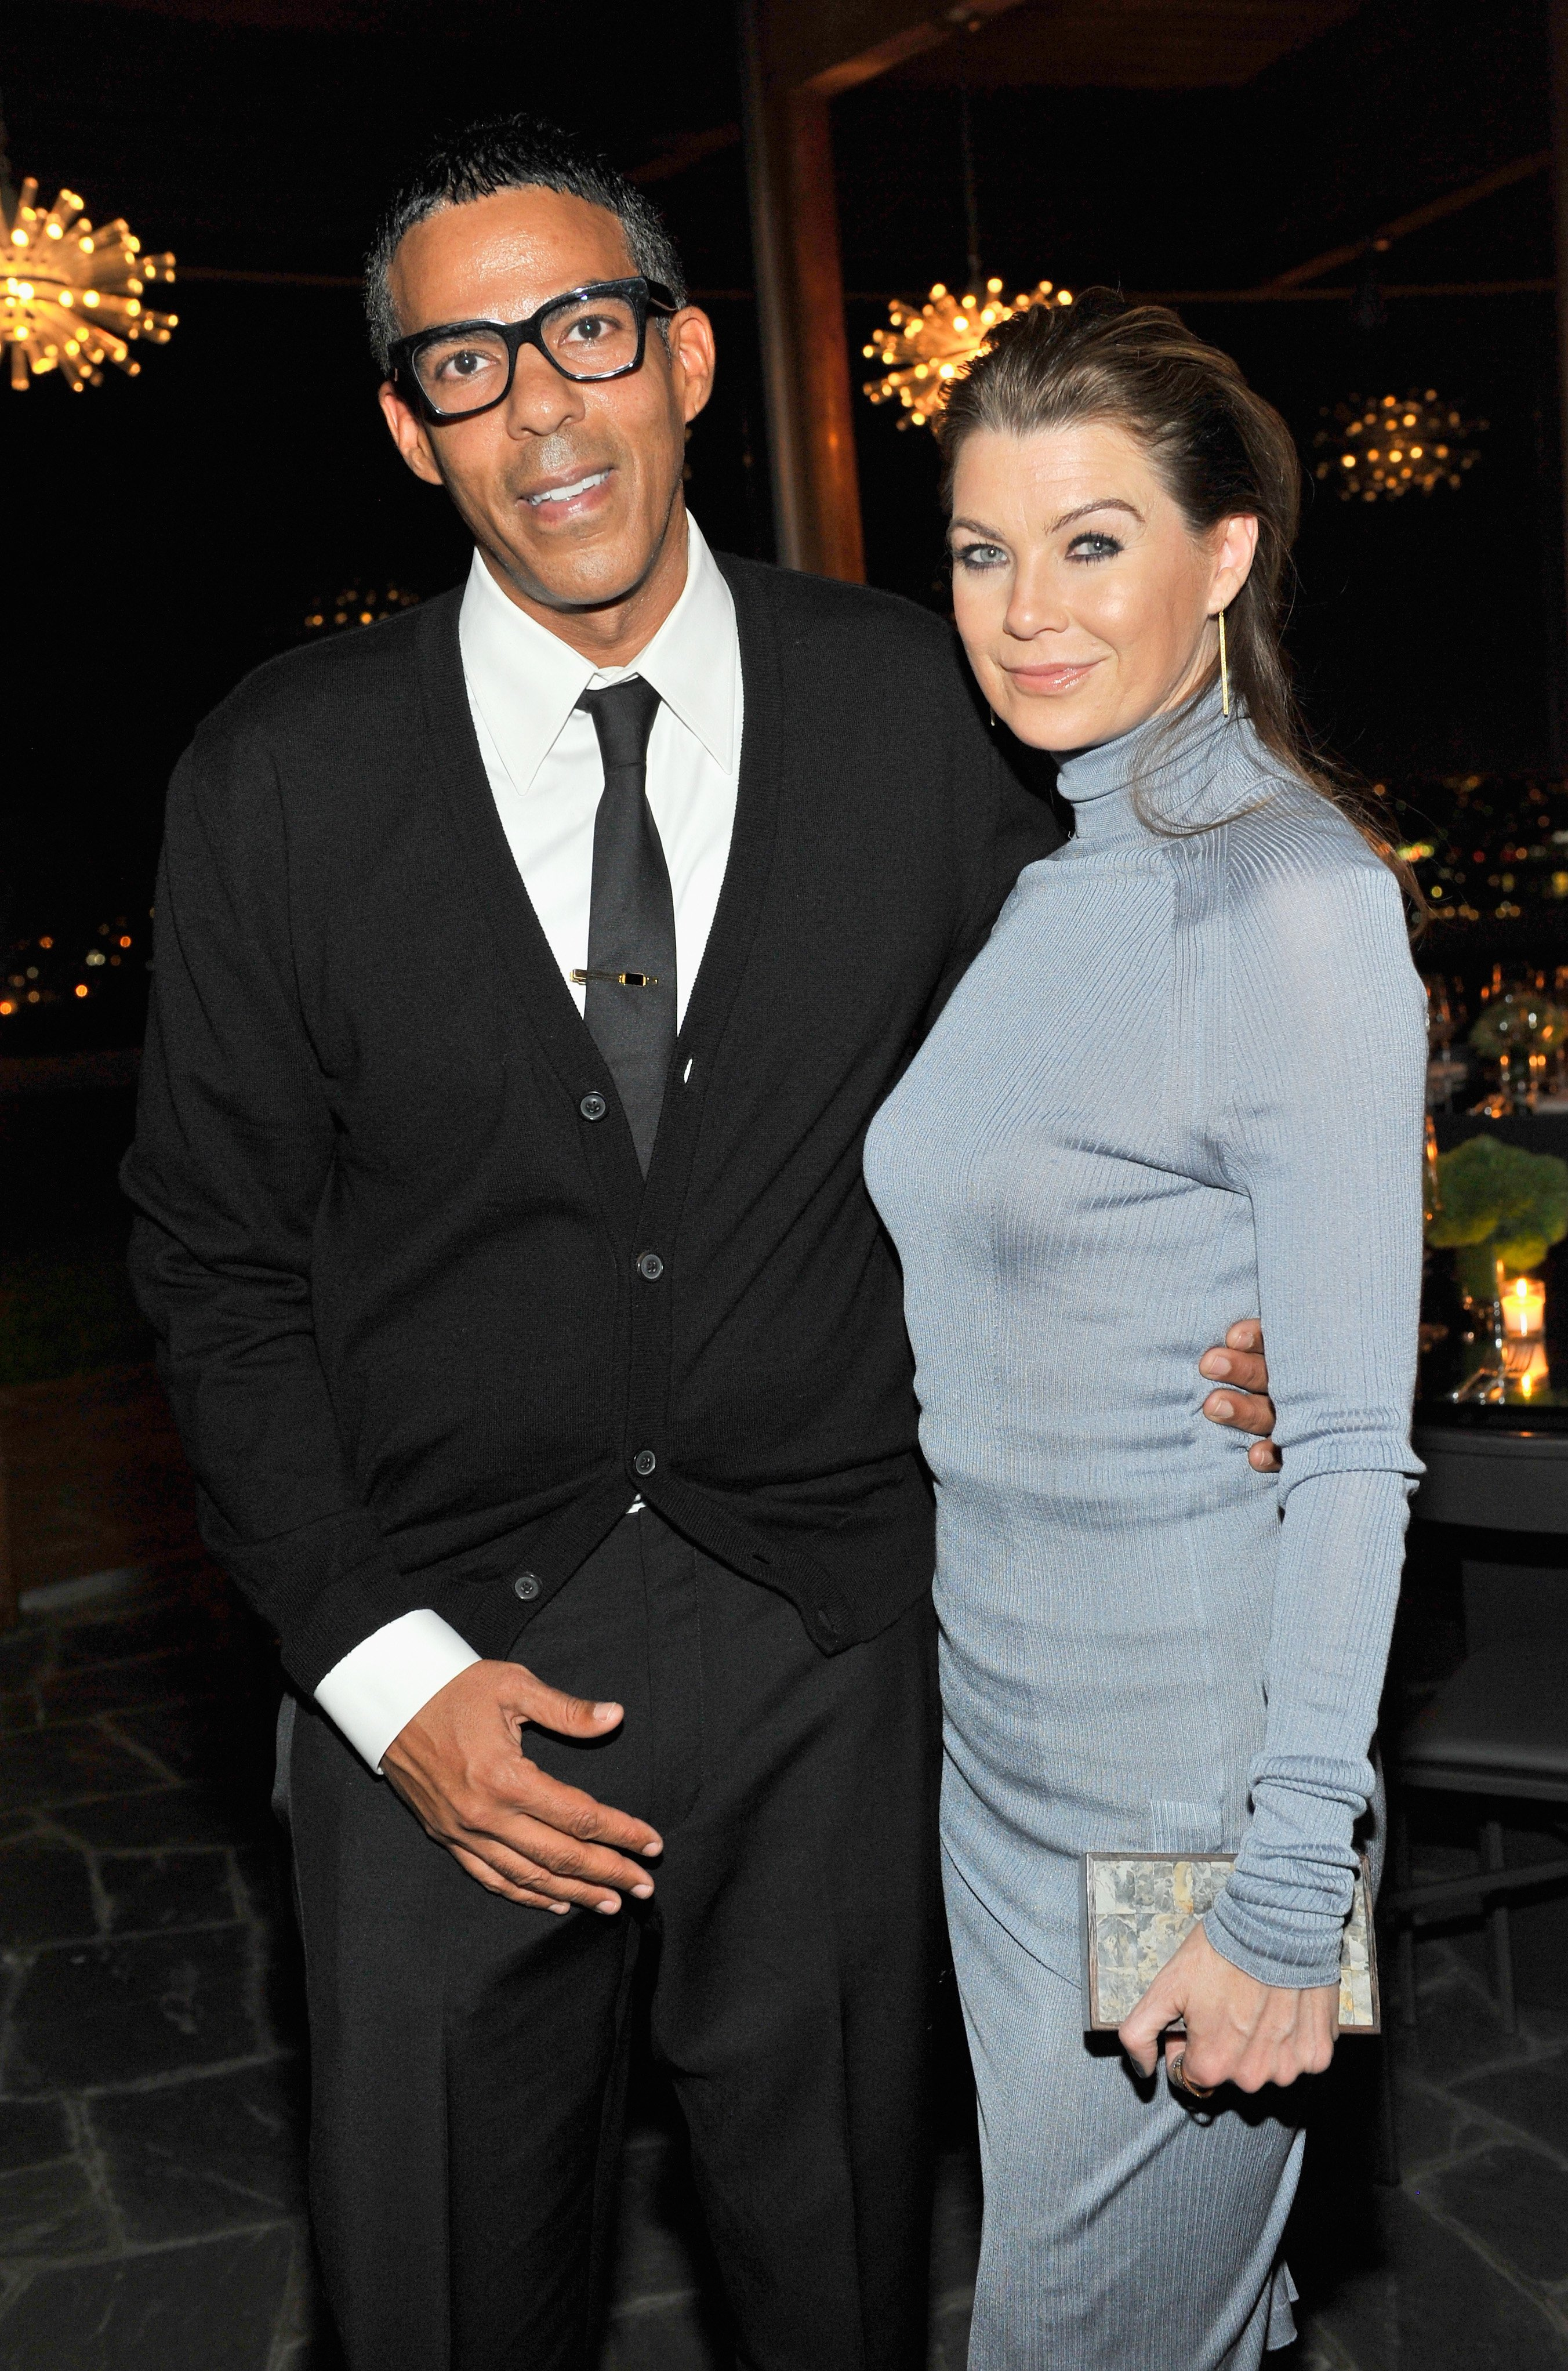 Music producer Chris Ivery (L) and actress Ellen Pompeo attend a private dinner hosted by VOGUE to celebrate TOD'S Creative Director Alessandra Facchinetti on November 5, 2014, in Los Angeles, California. | Source: Getty Images.